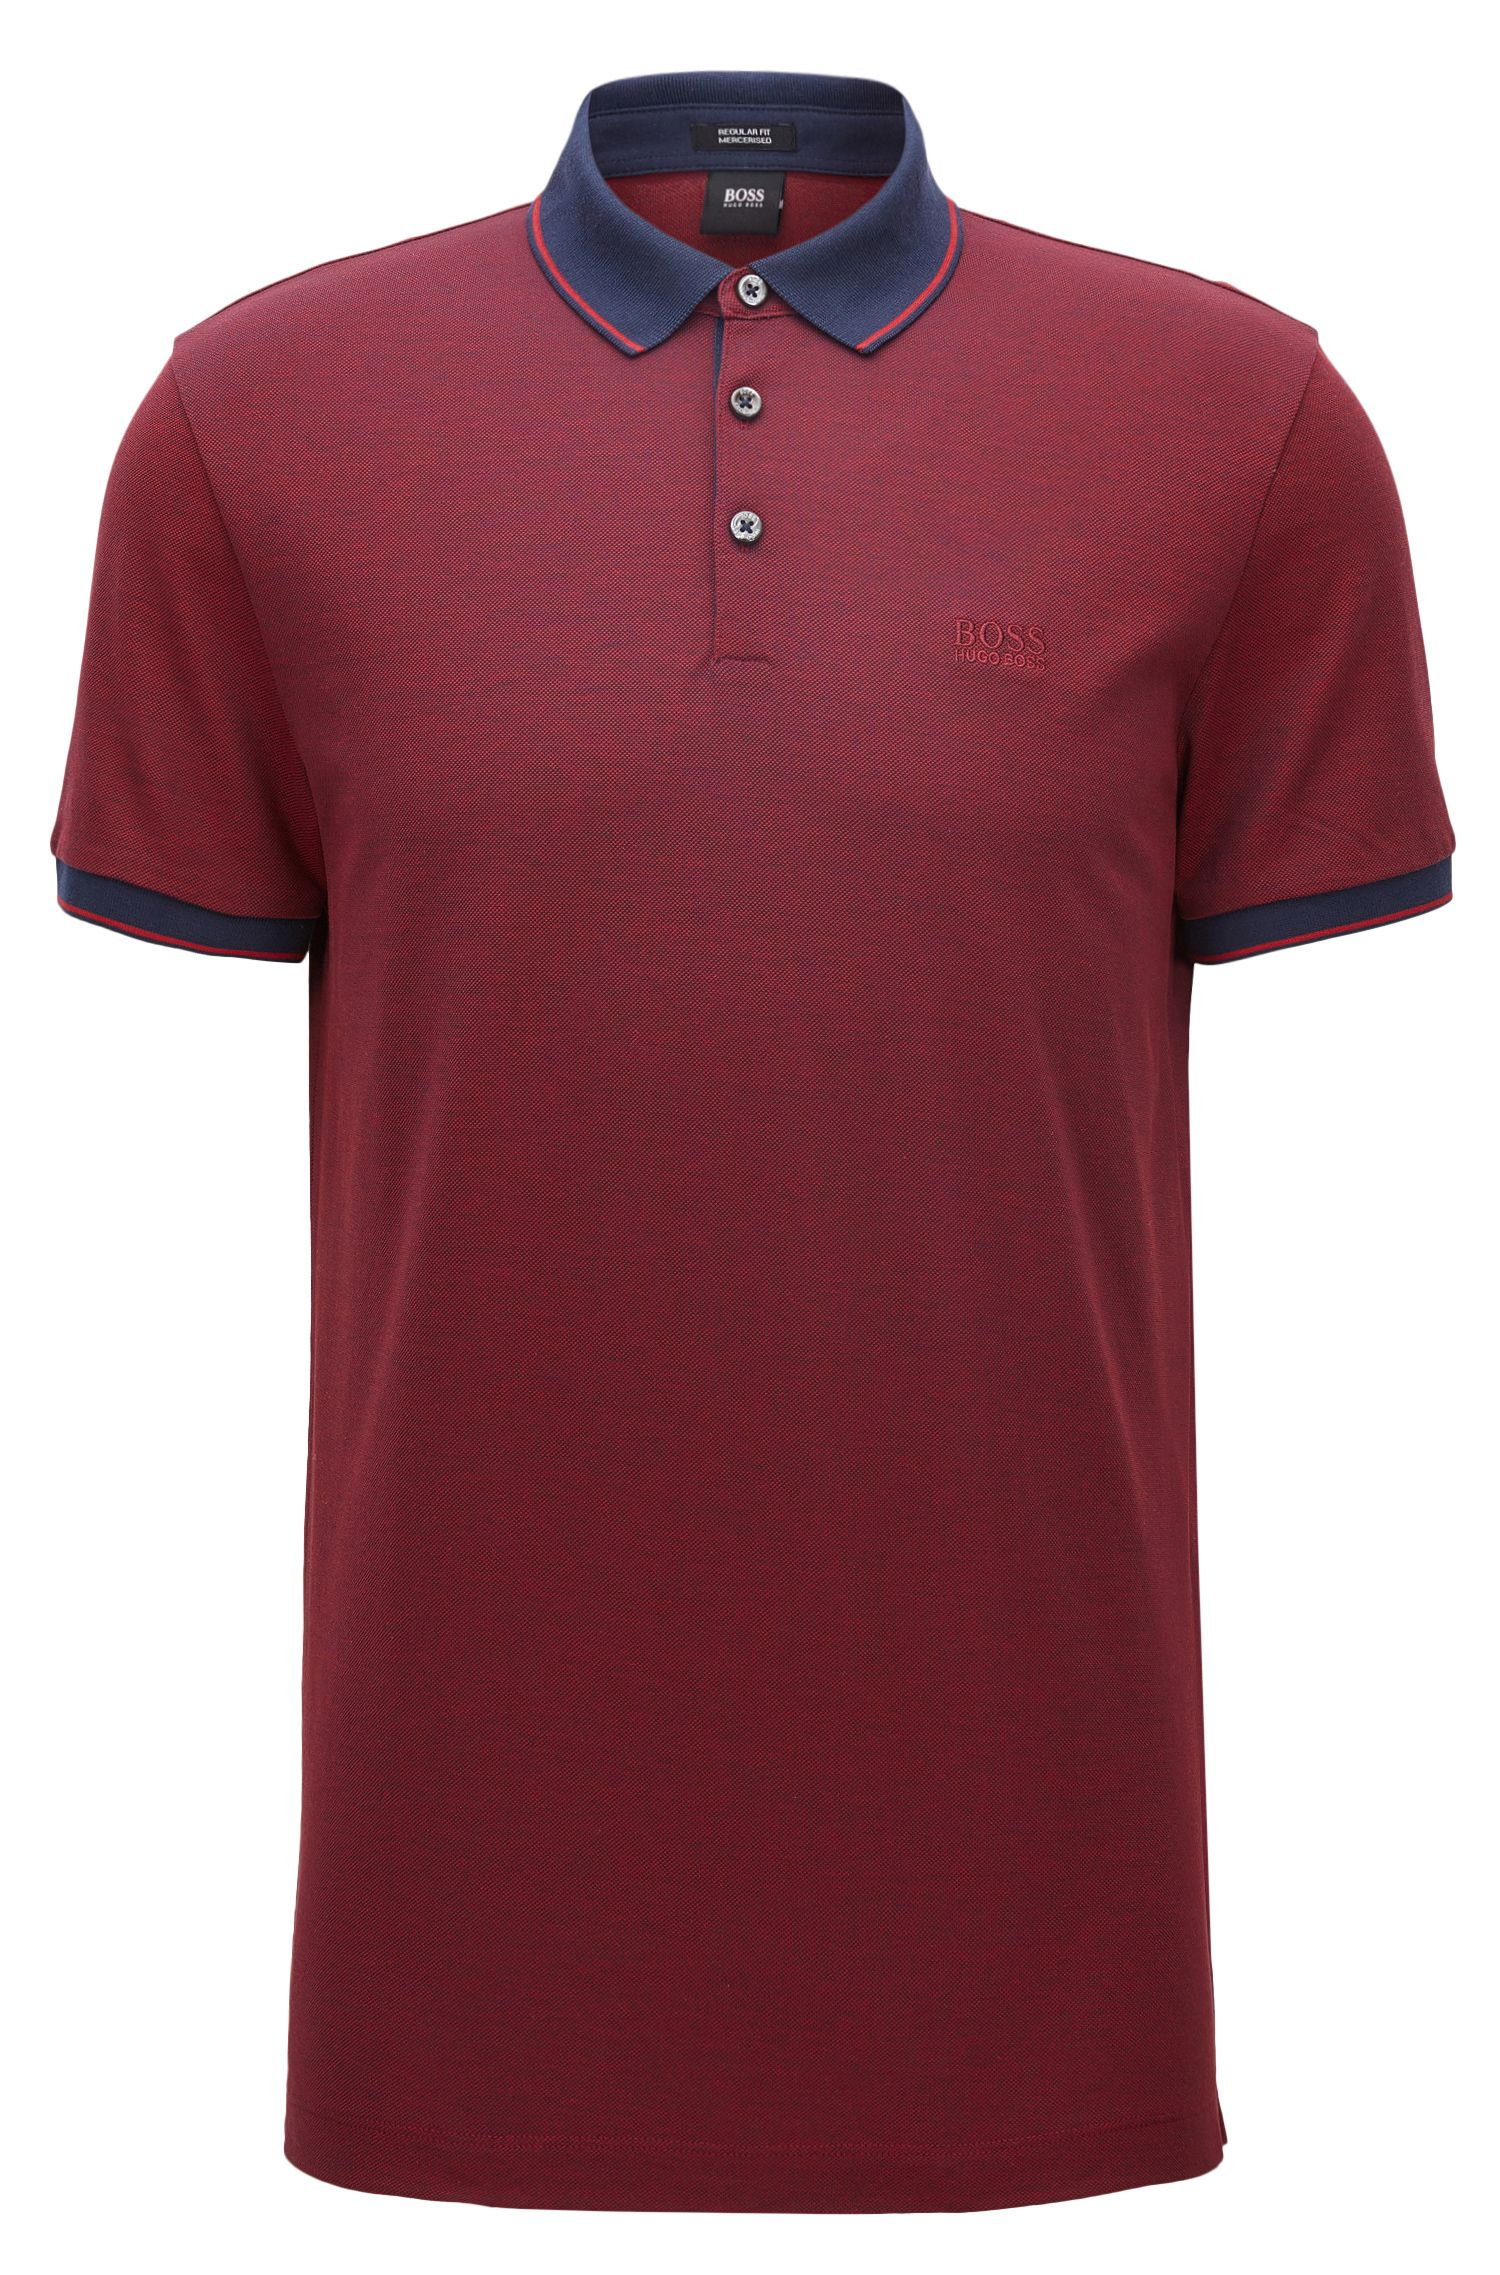 Regular-fit mercerised cotton piqué polo shirt